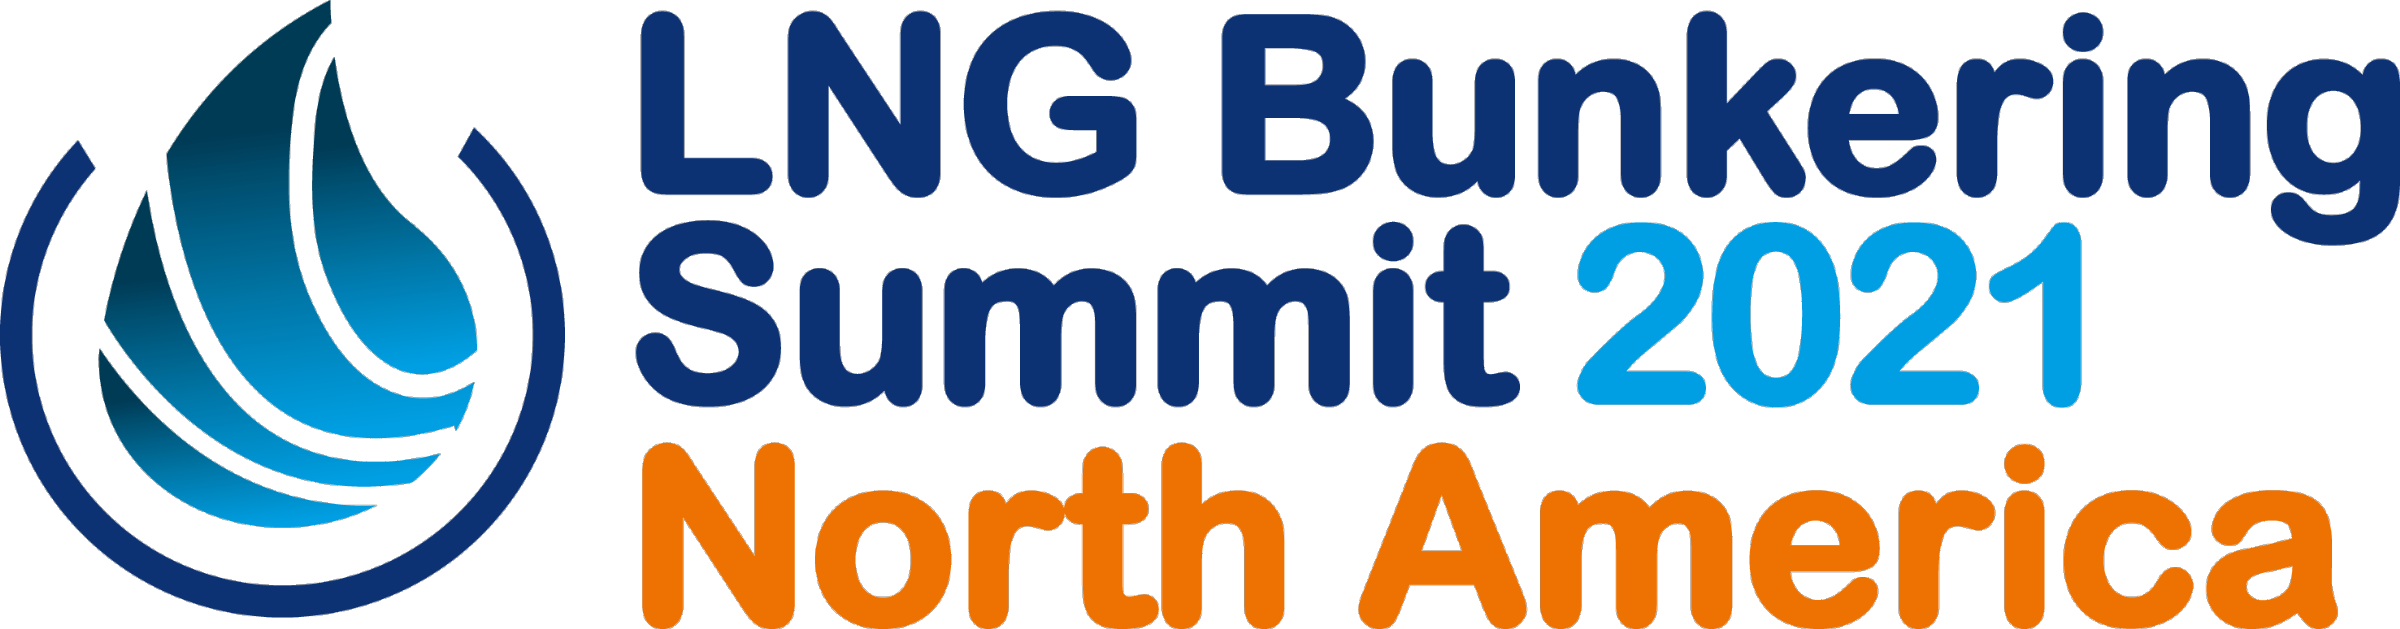 LNG Bunkering Summit North America